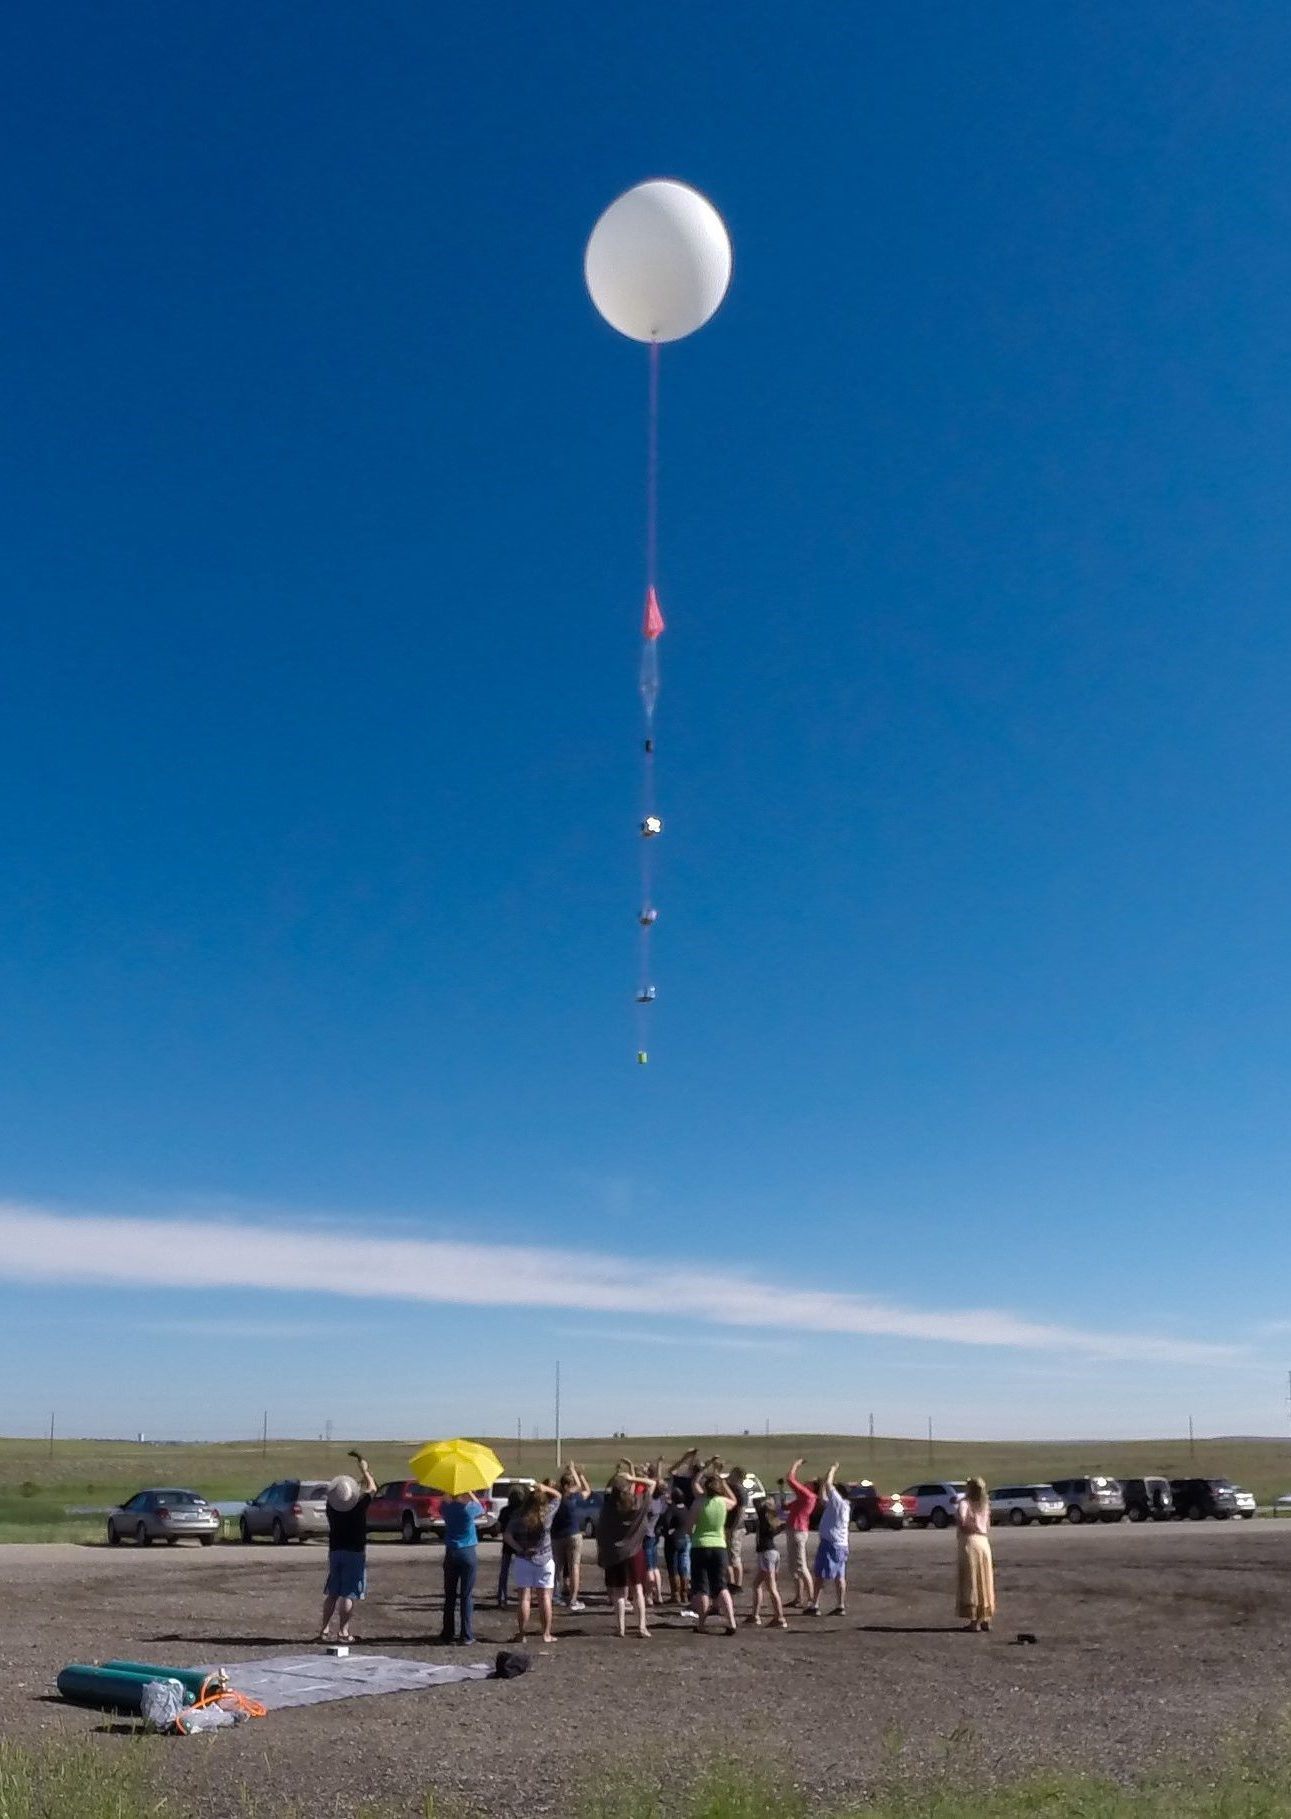 Launching a Balloon